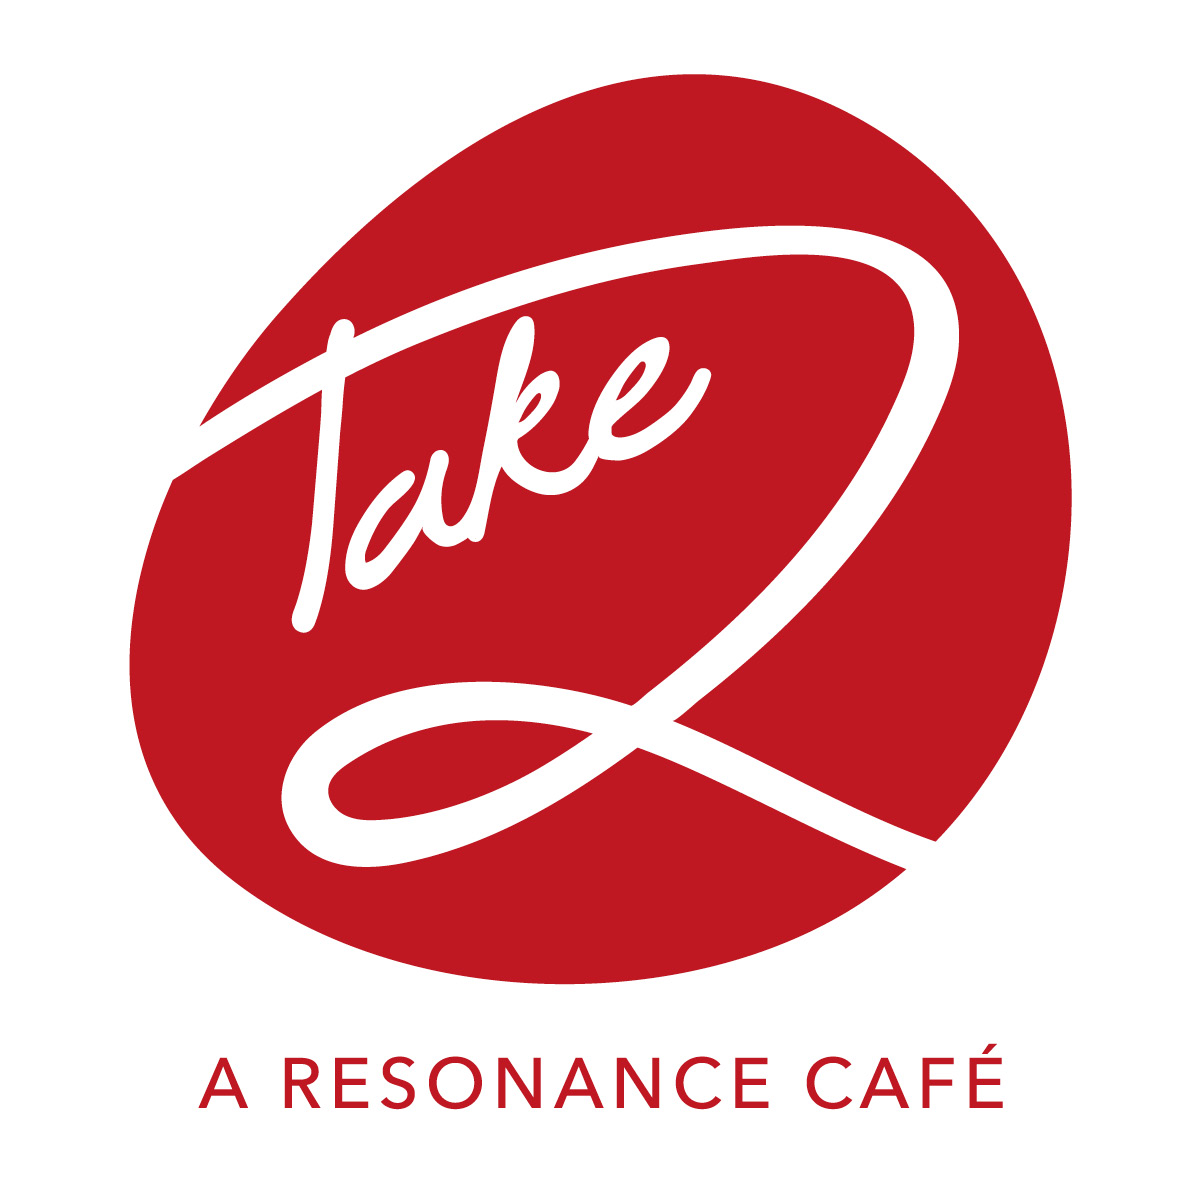 TAKE 2 - A RESONANCE CAFÉ